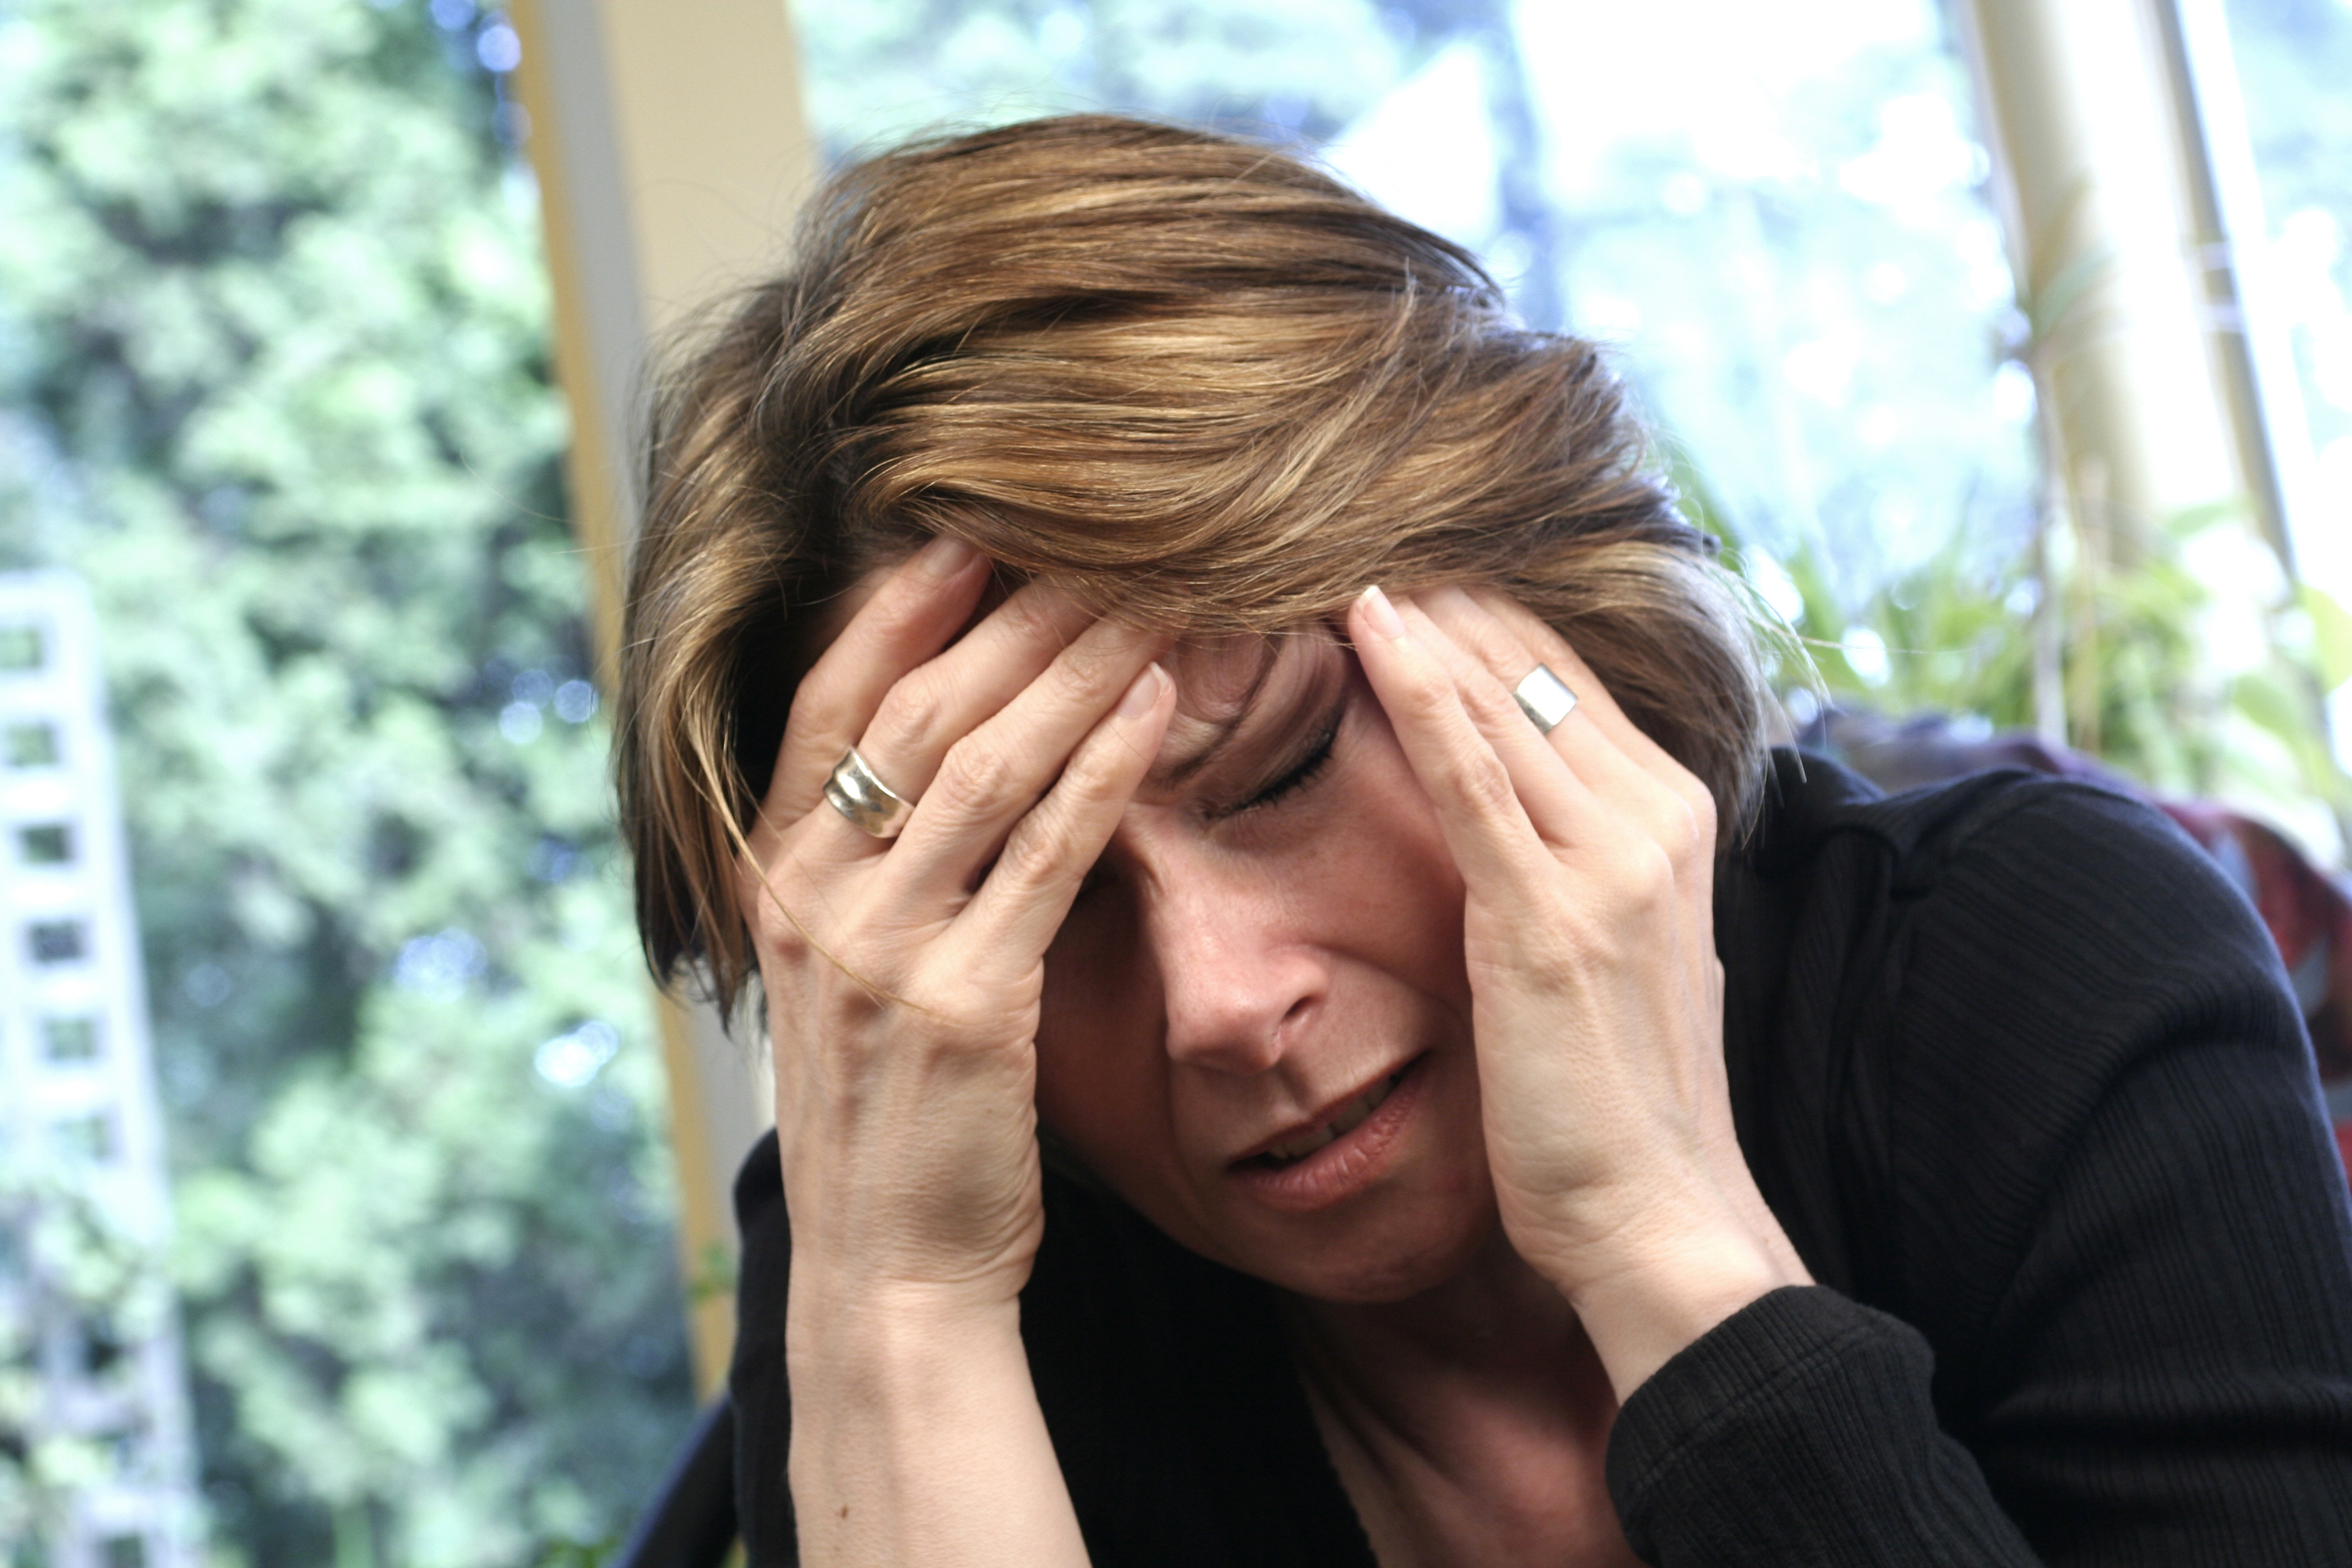 Science News: Migraines May Be Related to Nutrient Deficiencies